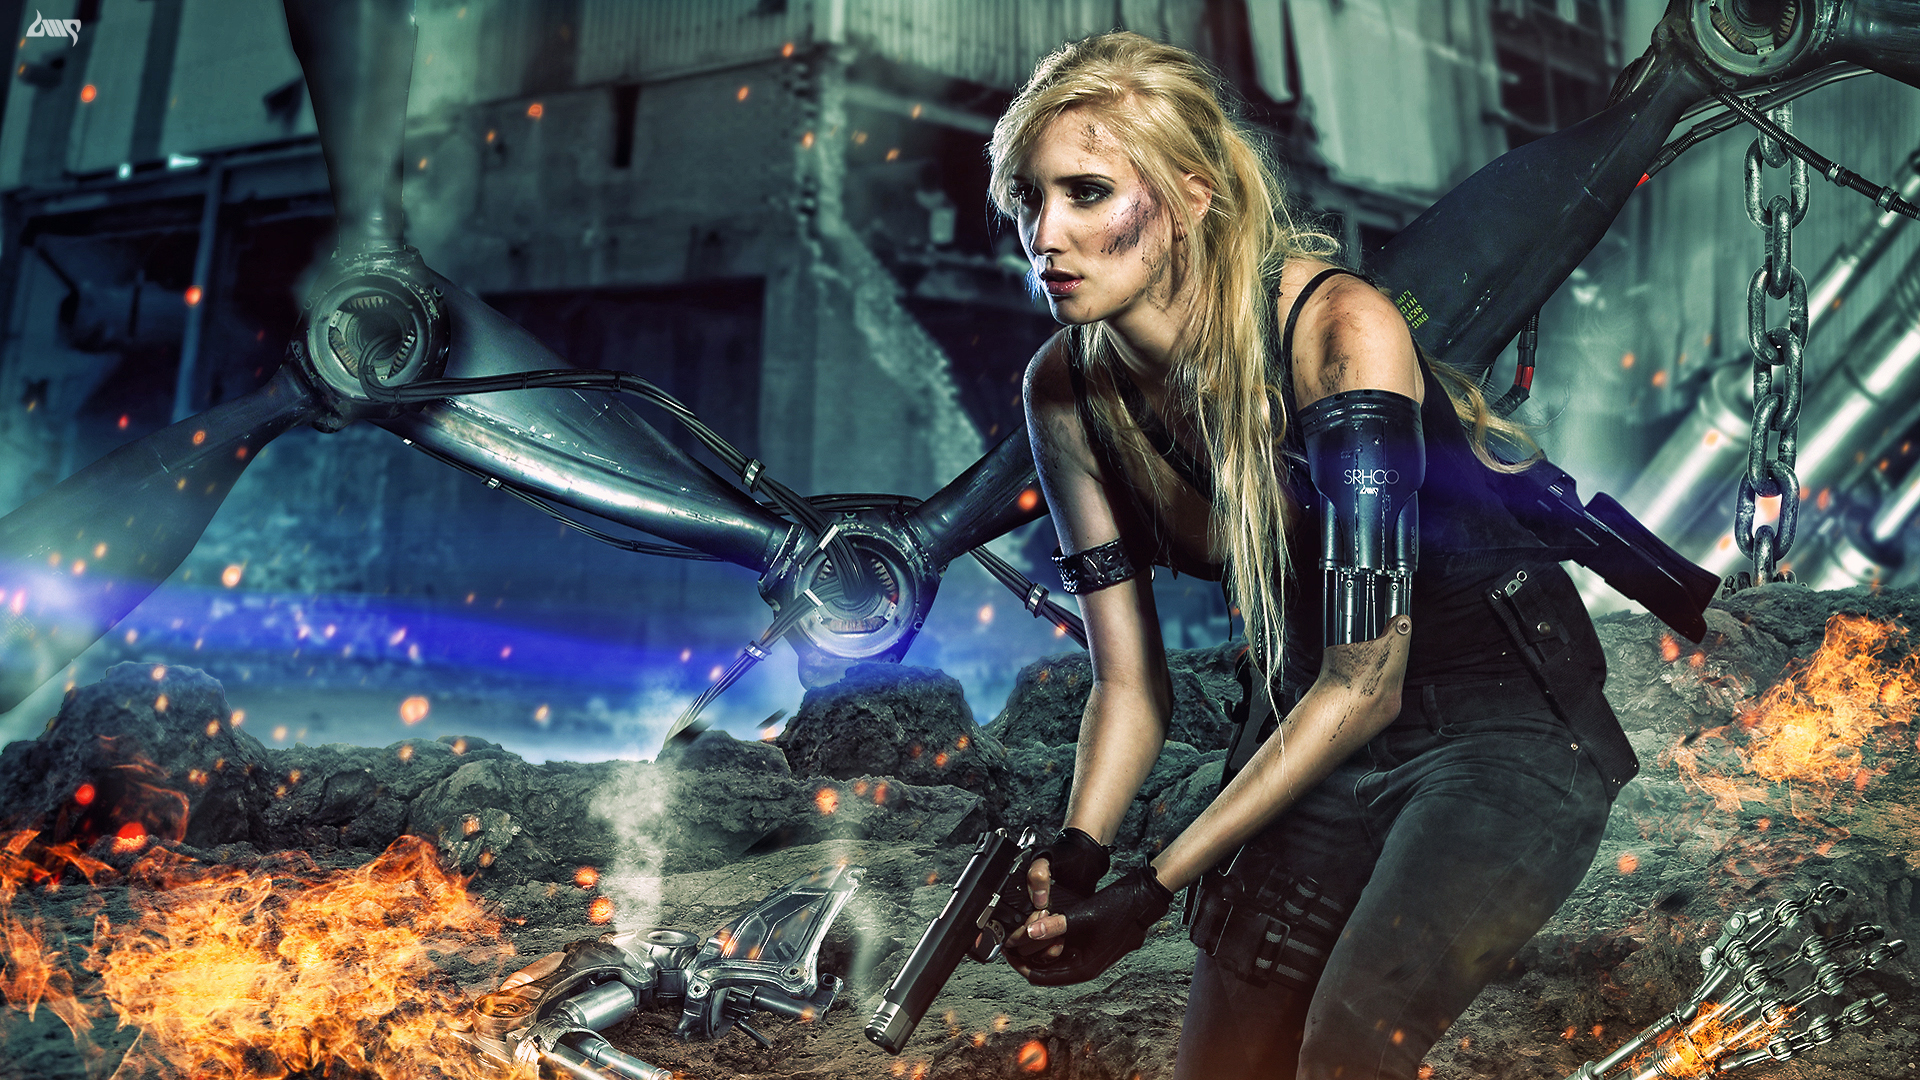 Sarah Connor The Terminator Chronicles by dennybusyet